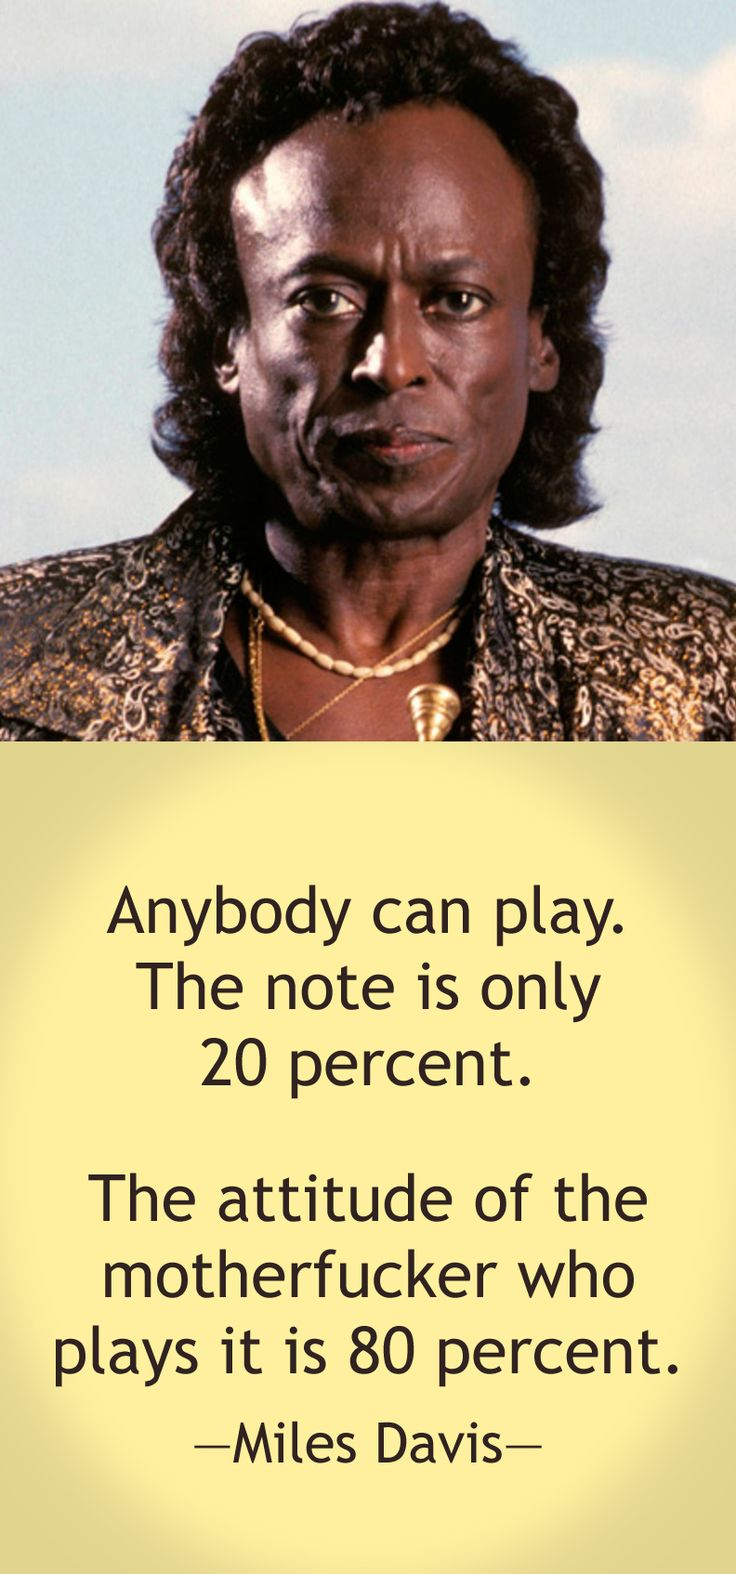 Anybody can play. The note is only 20 percent. The attitude of the motherfucker who plays it is 80 percent. — Miles Davis